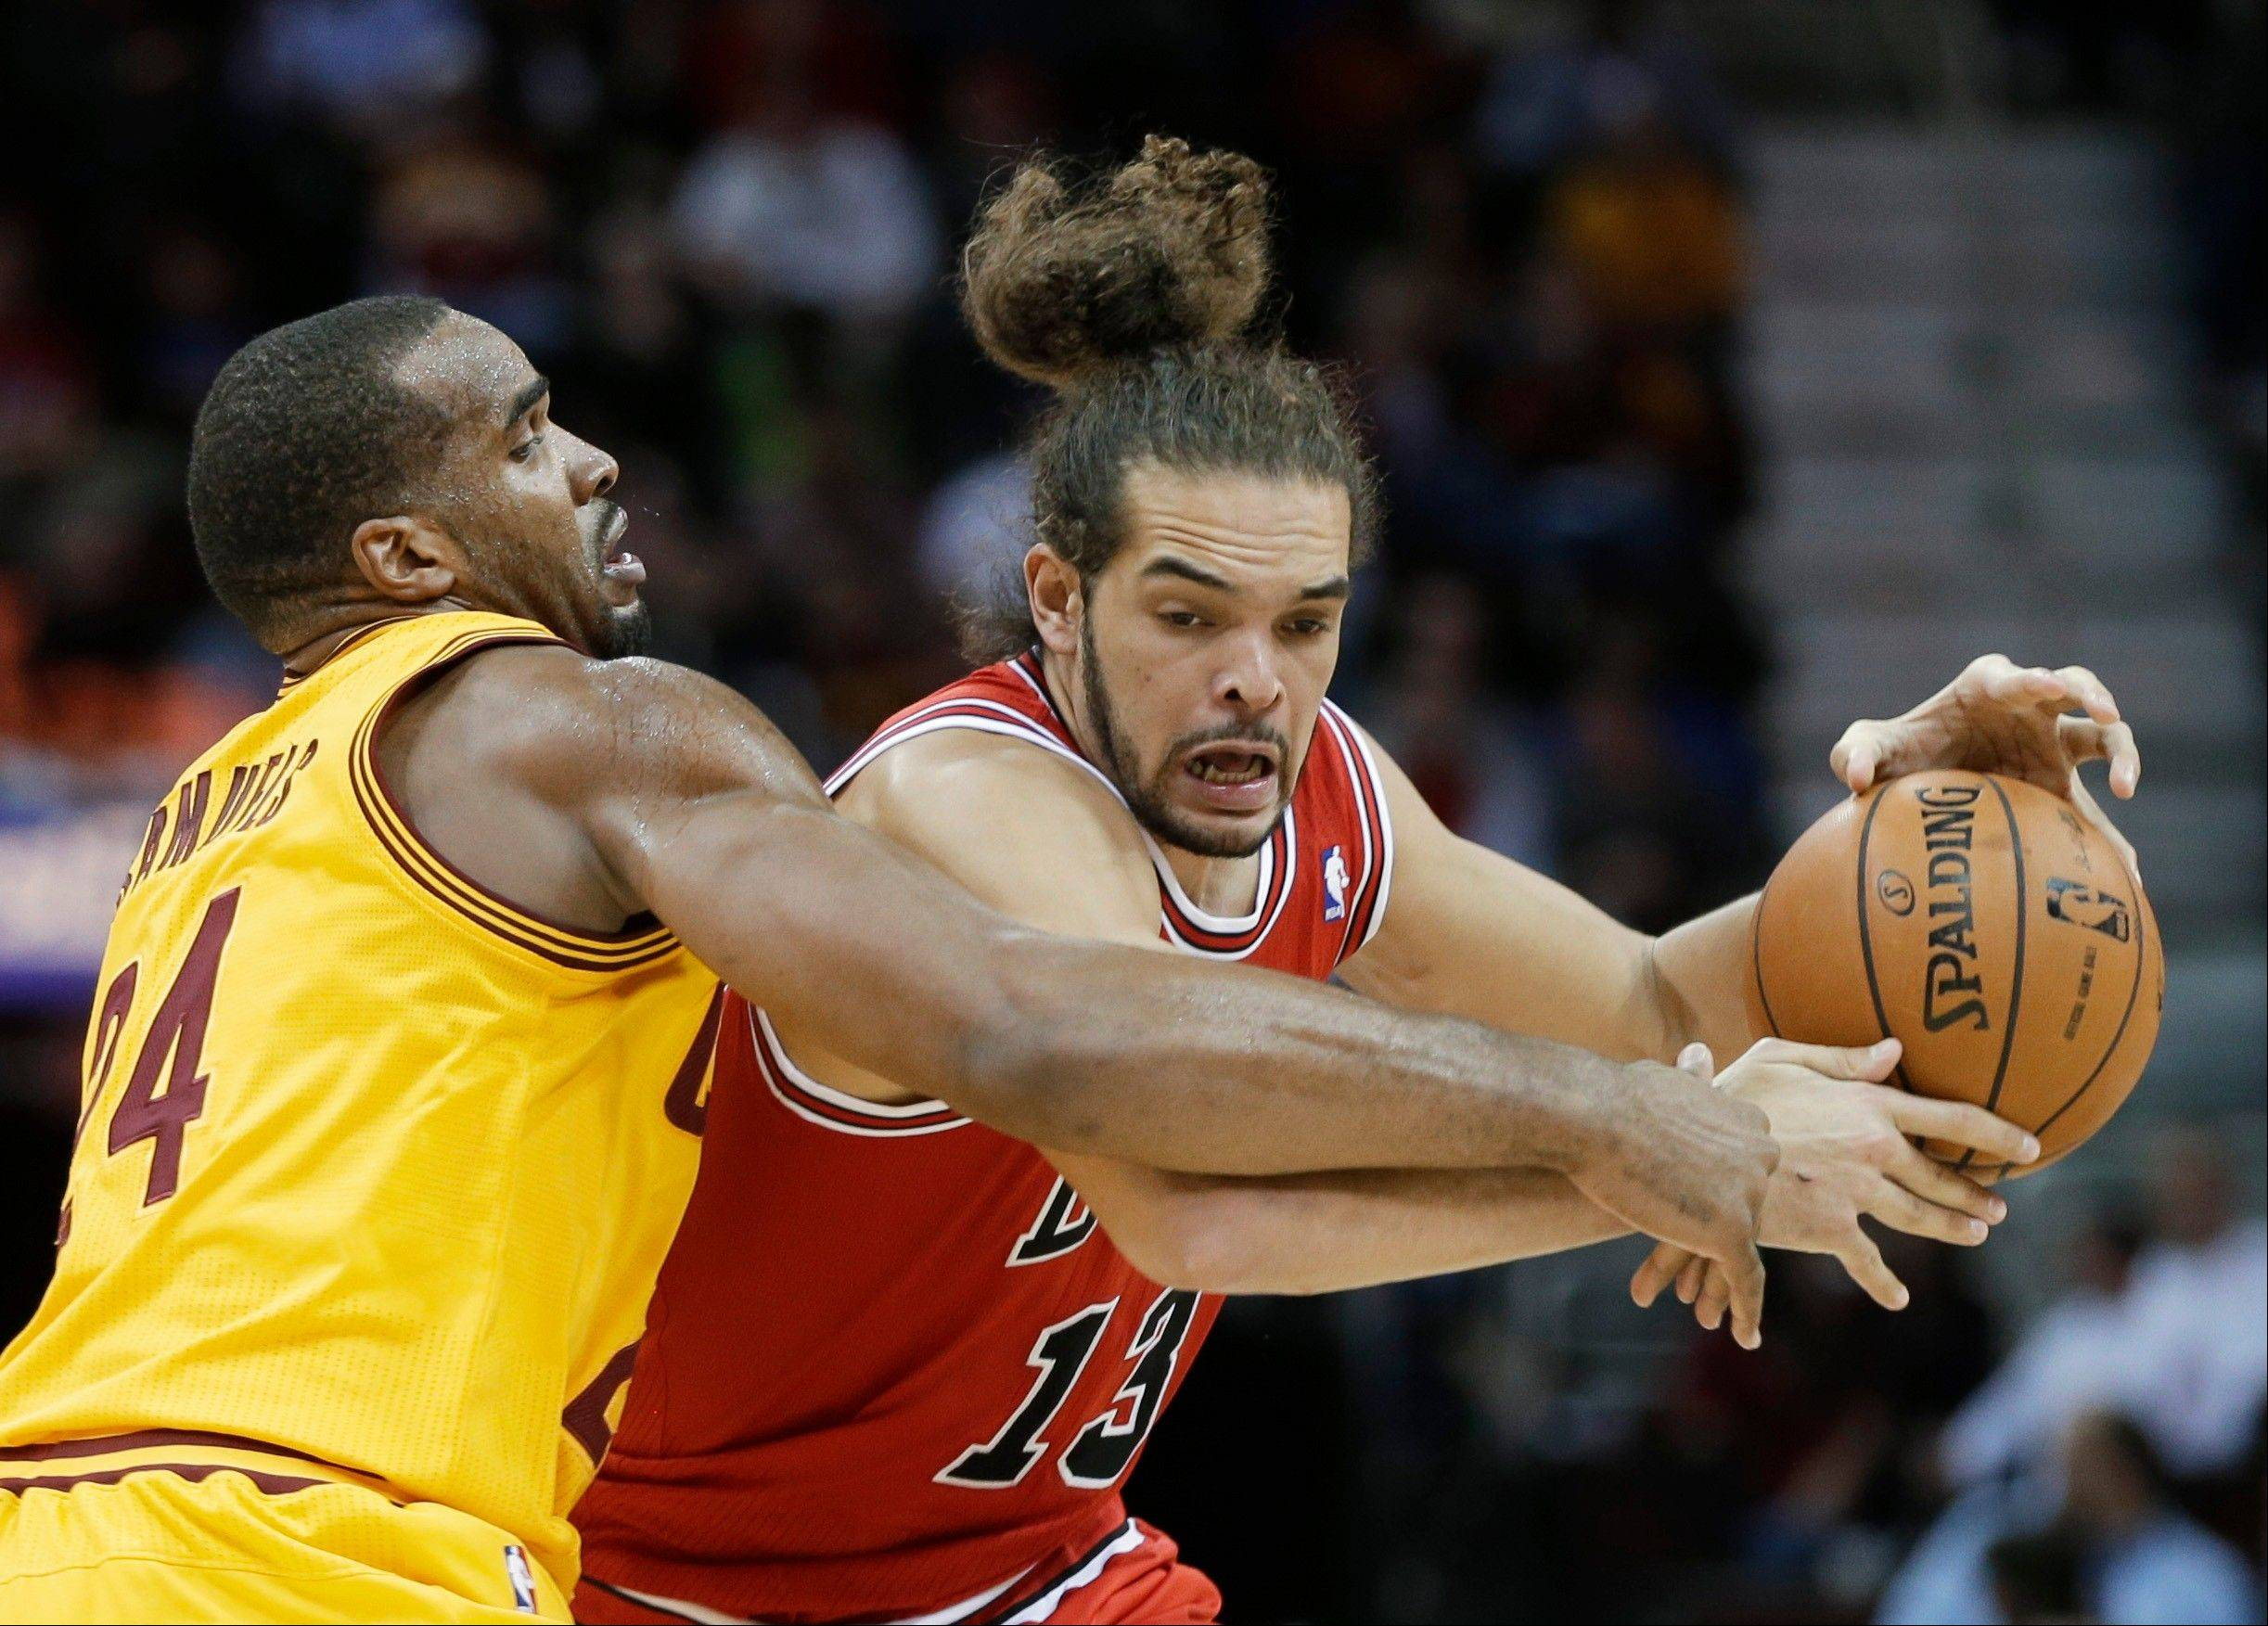 Cleveland Cavaliers' Samardo Samuels fouls the Bulls' Joakim Noah Friday during the fourth quarter.